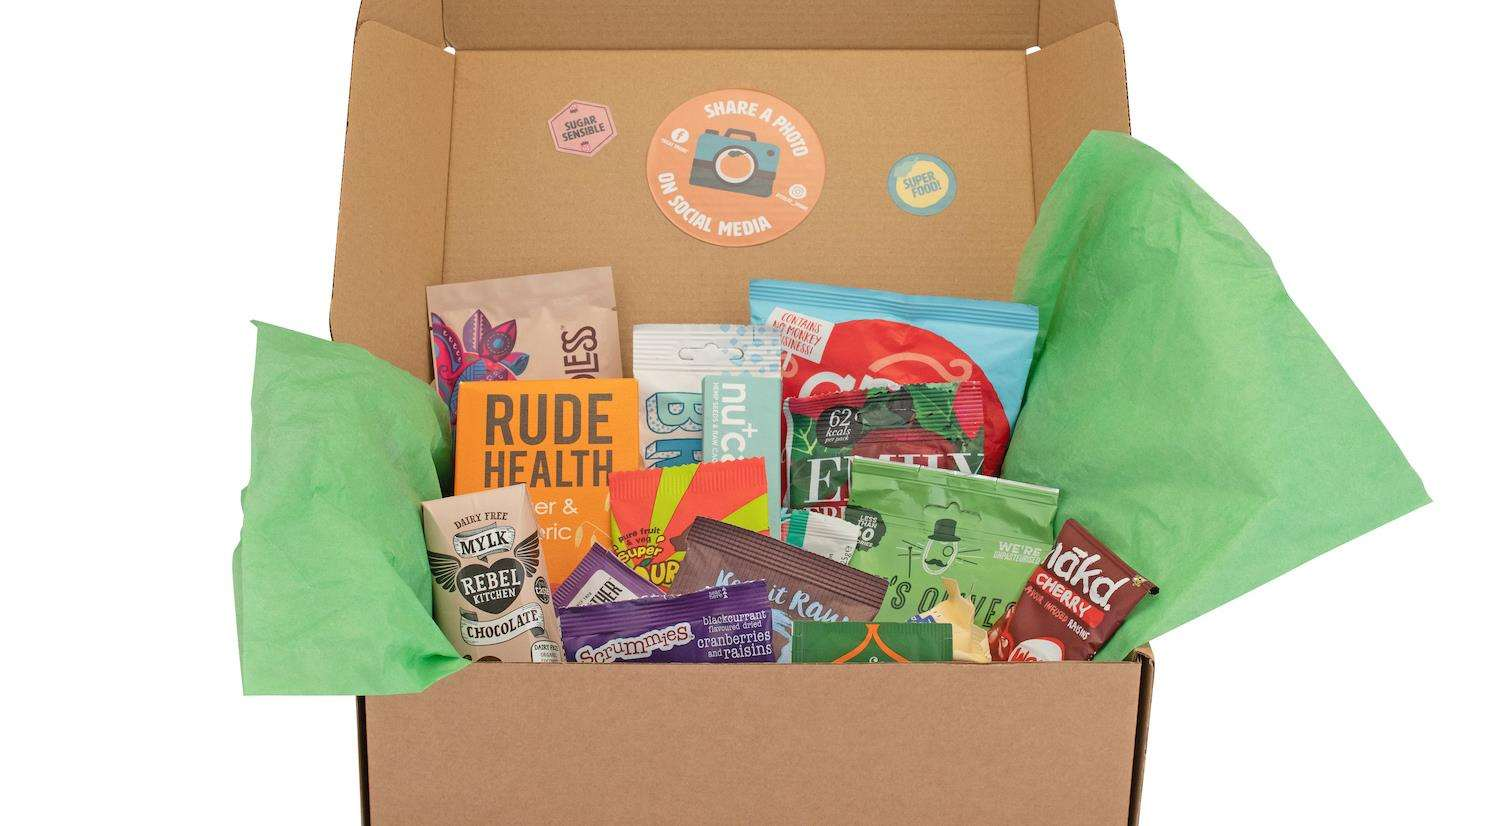 Treat Trunk boxes are full of healthy snacks